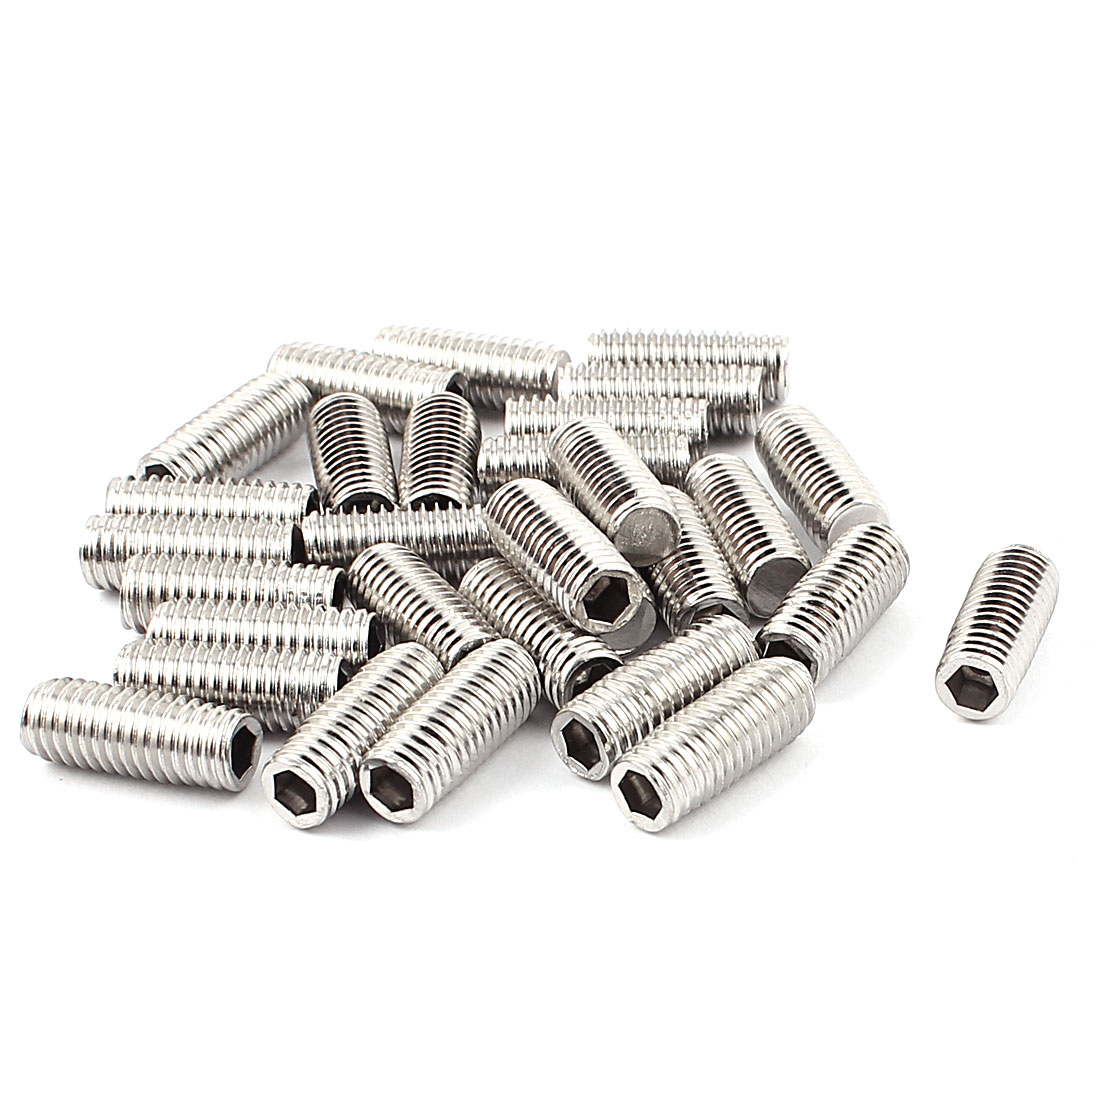 Bolt Base Stainless Steel M8x20mm Hex Socket Grub Screws 30pcs